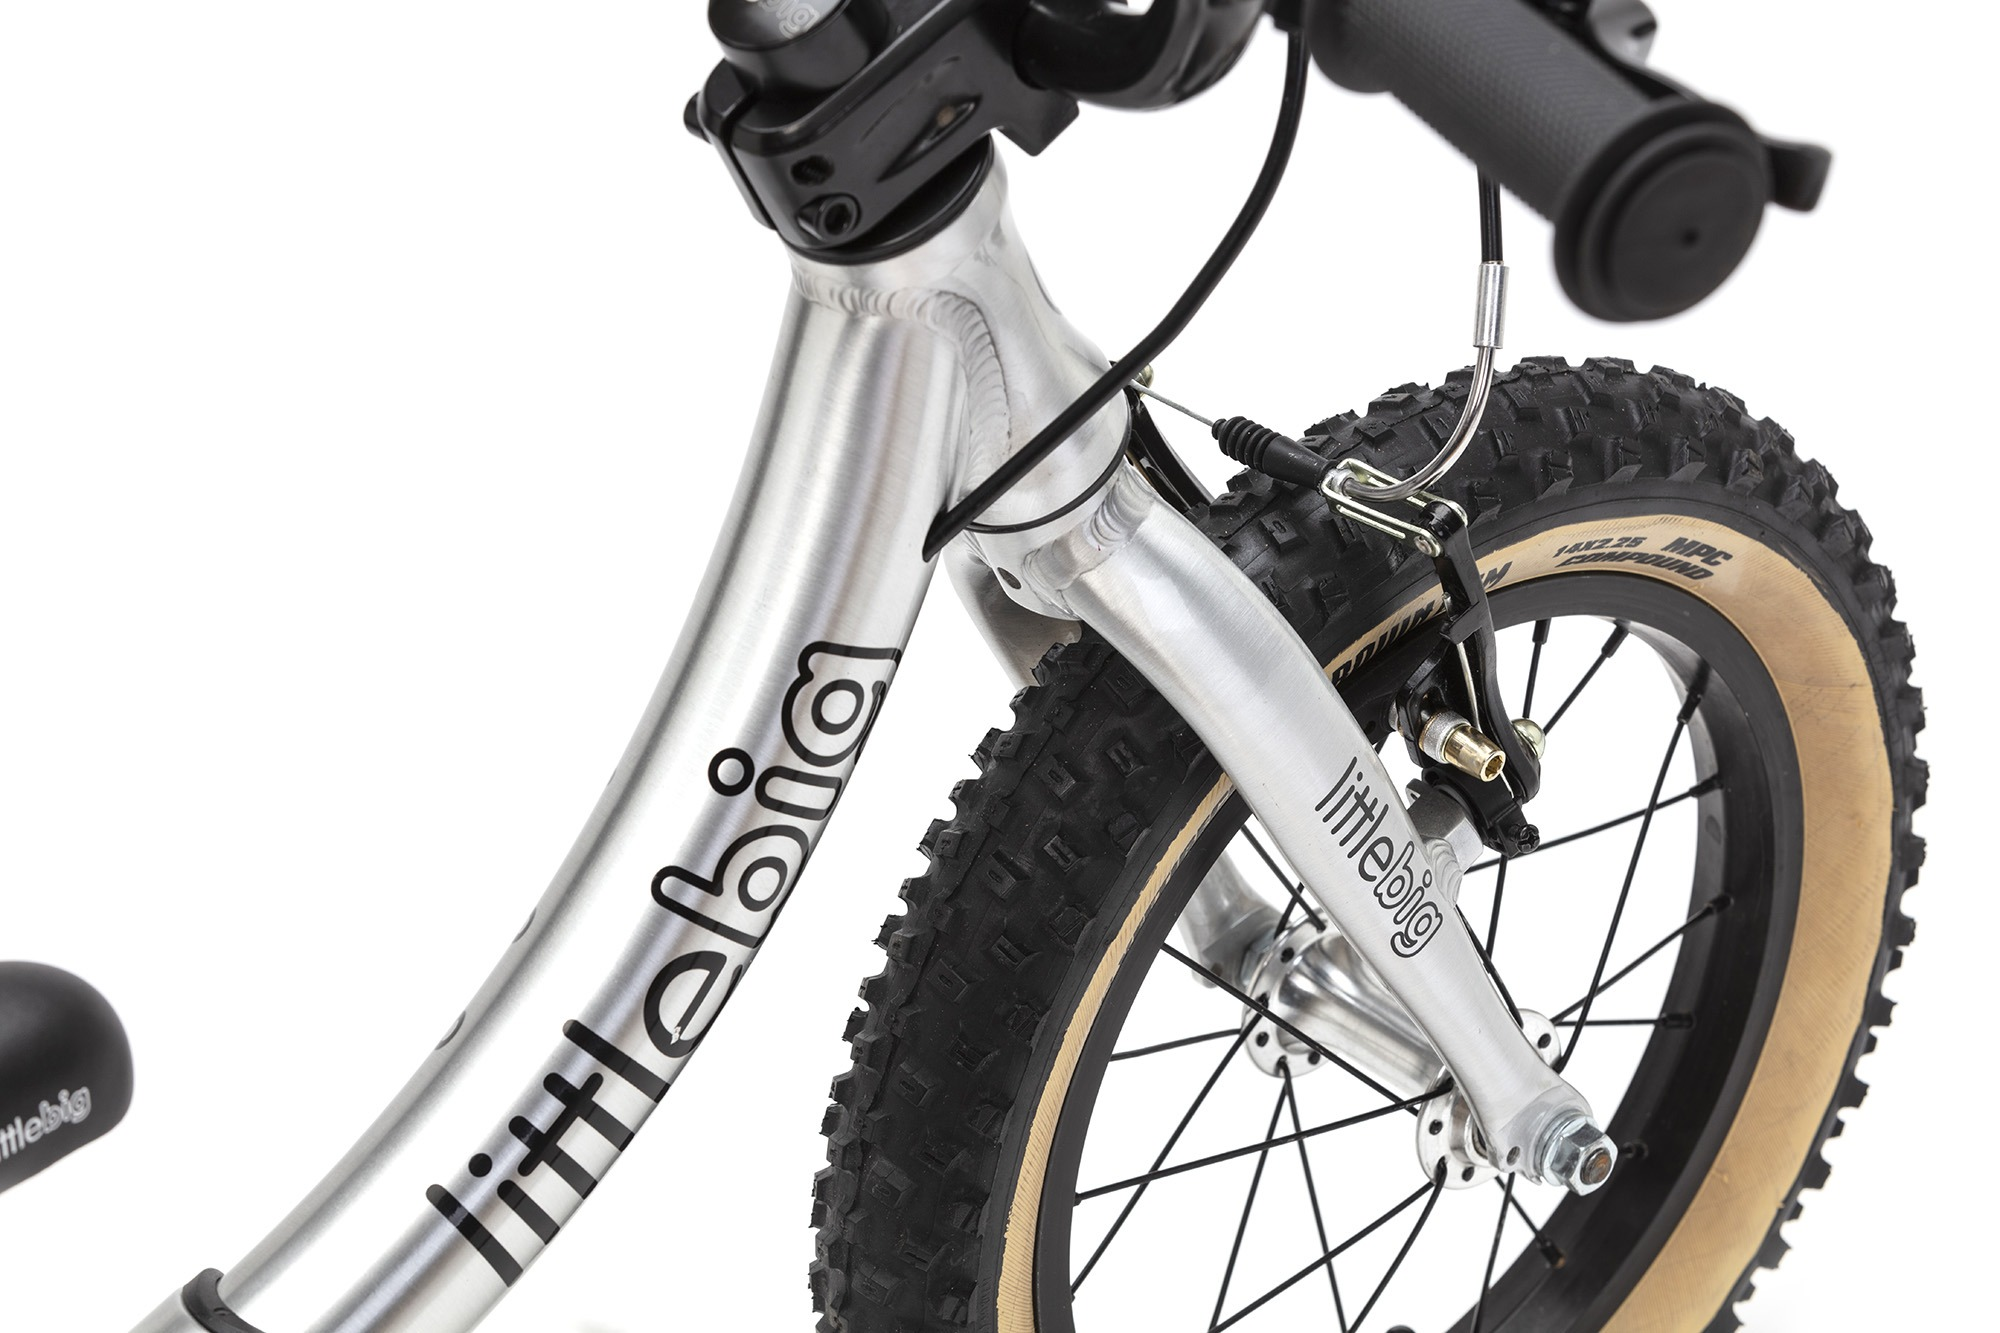 brushed balance bike fork and tyre detail